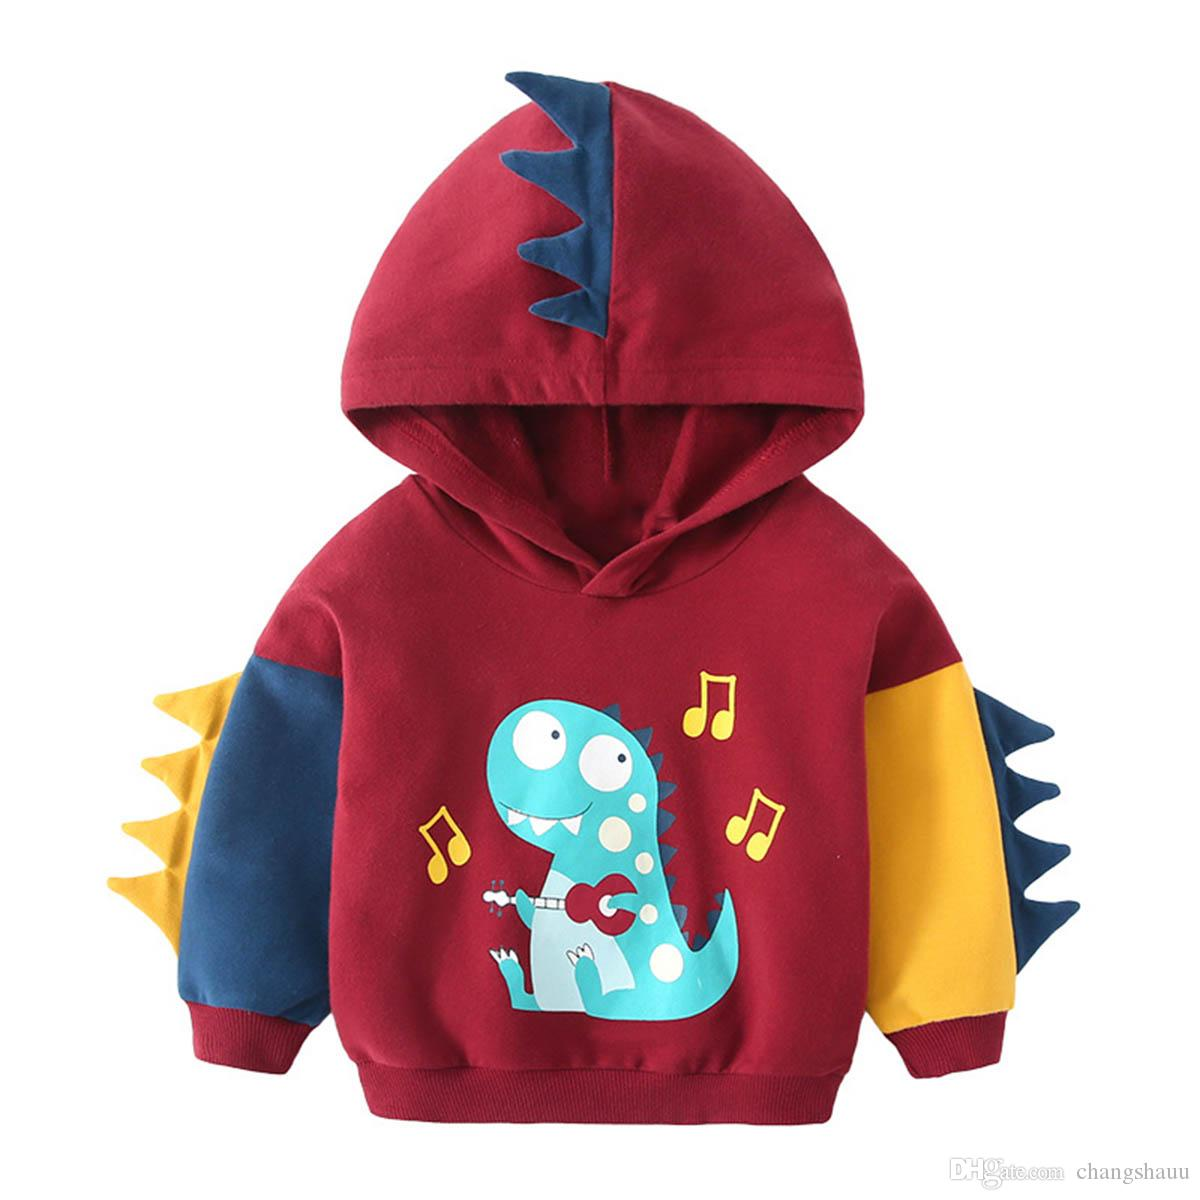 Toddler Girl Boy Spring Autumn Long Sleeve Splice Sweatshirt New Korean Cool Casual Baby Dinosaur Hooded Pullover Hoodies